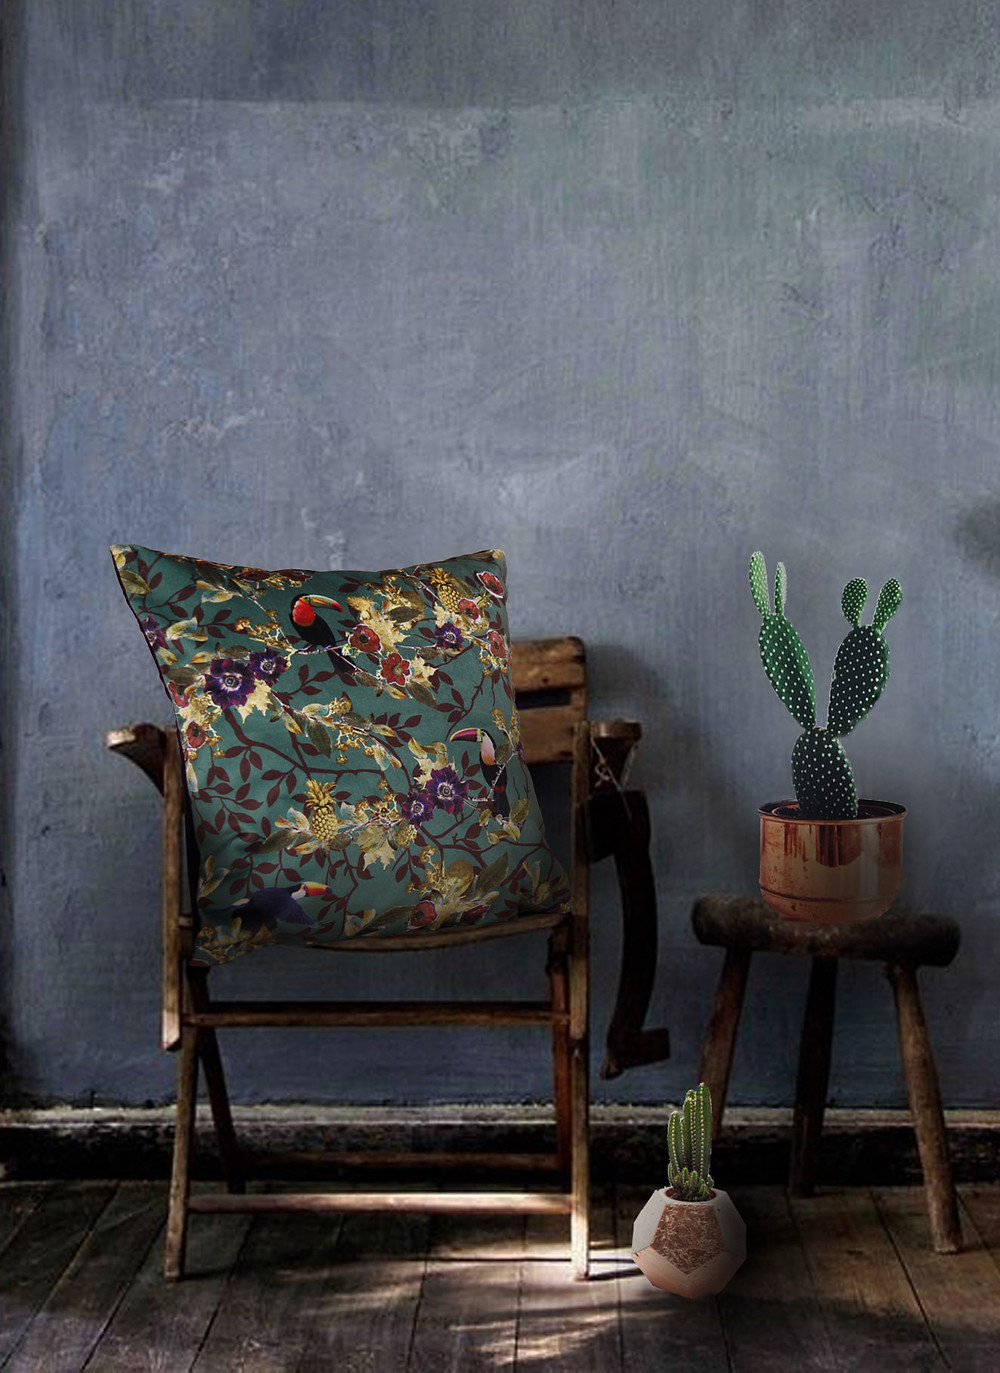 Green interior styling, cushion with toucan print